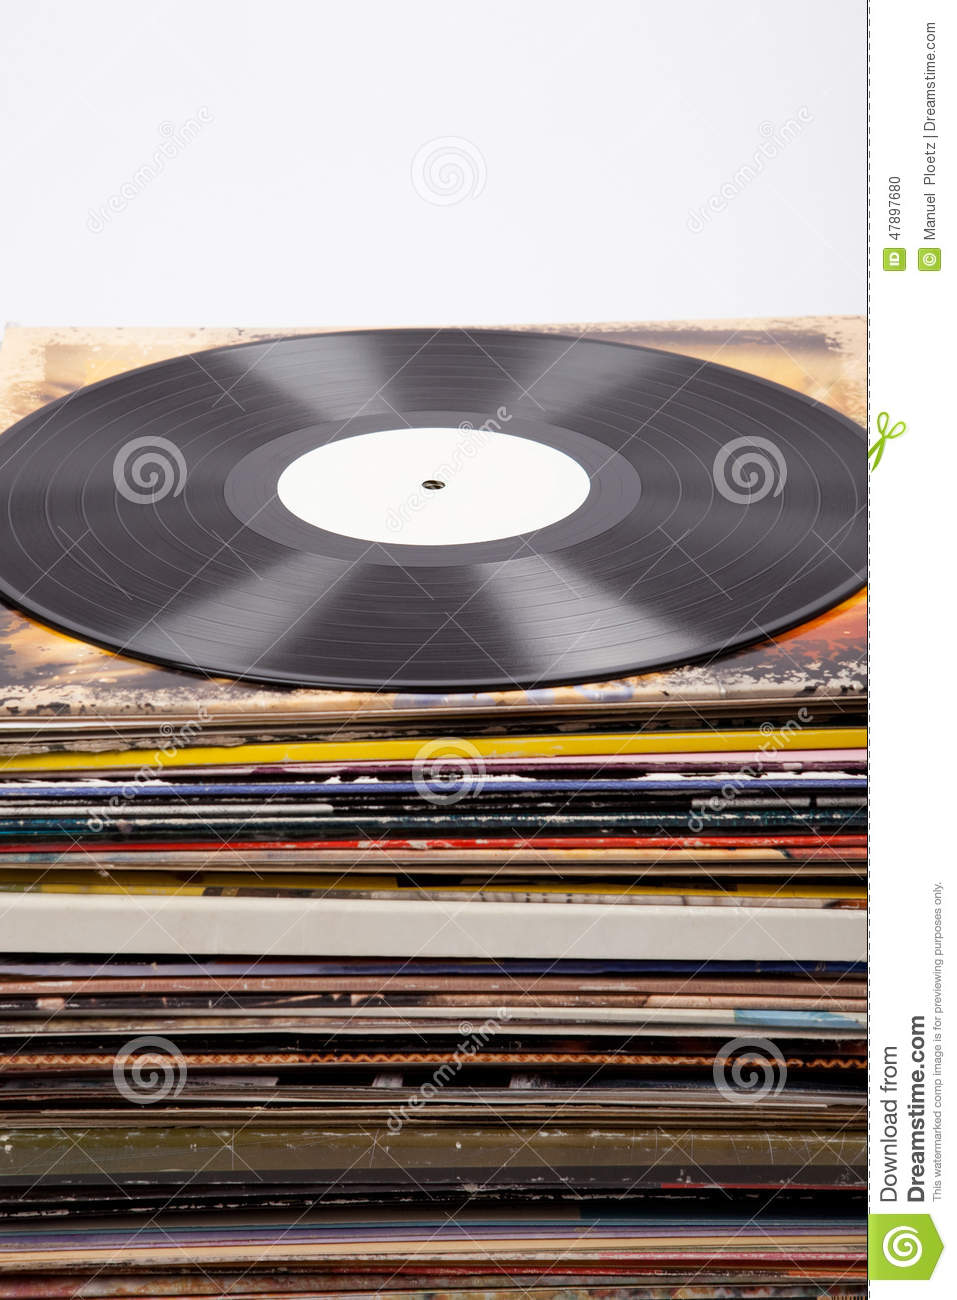 Vinyl Record With White Label On Album Covers White